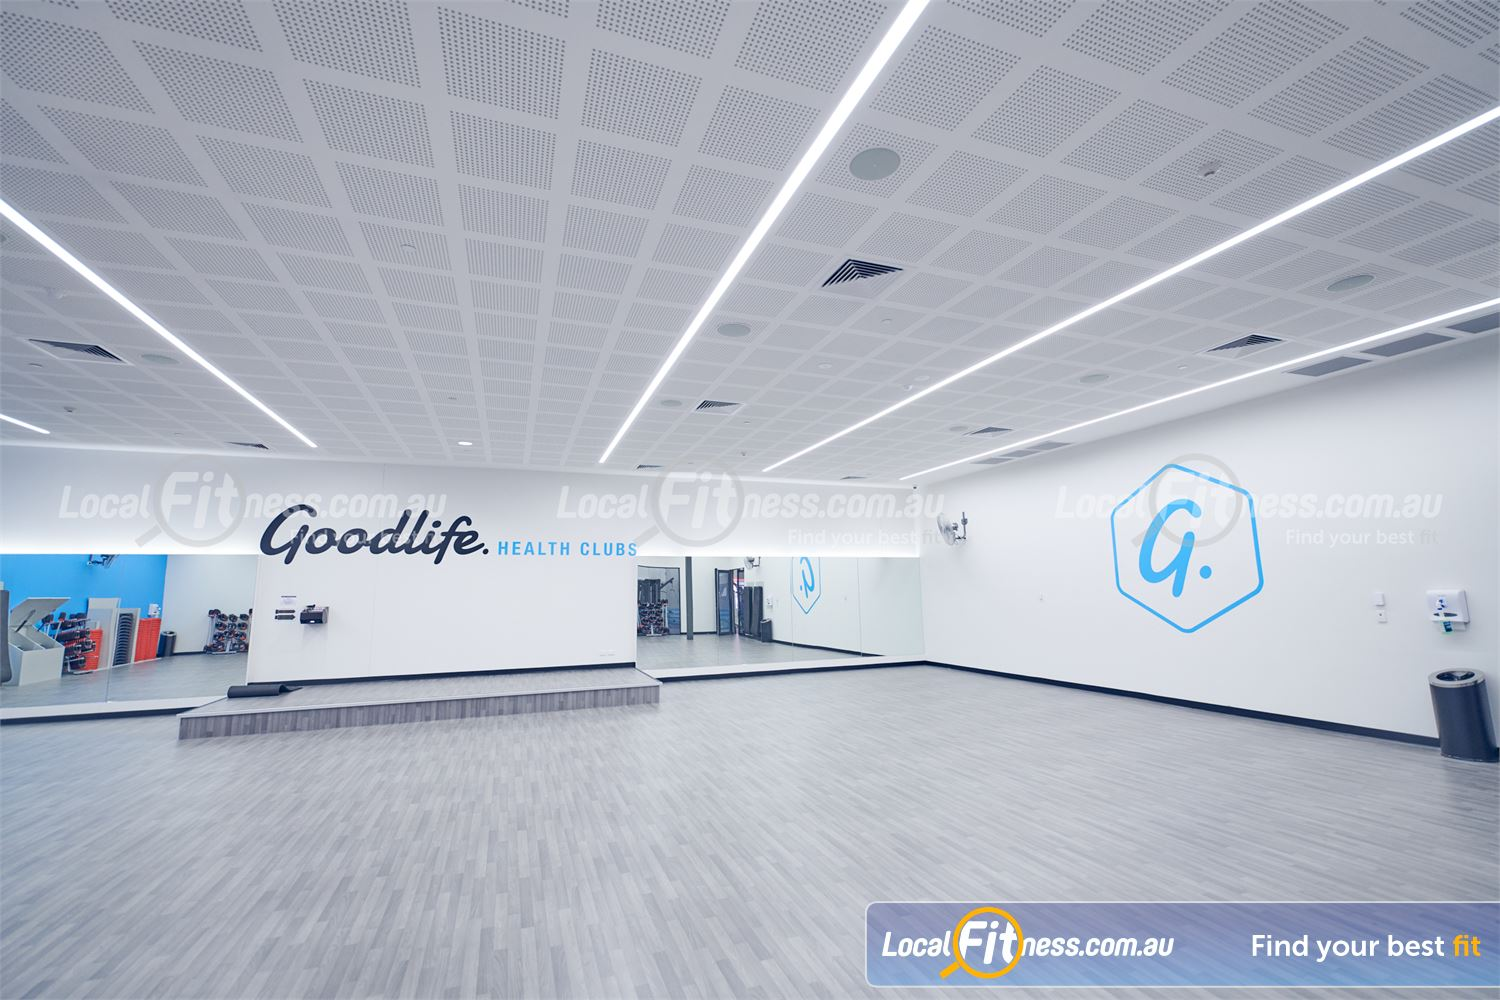 Goodlife Health Clubs Ringwood Goodlife Ringwood will include your favorite classes inc. Yoga, Pilates and more.